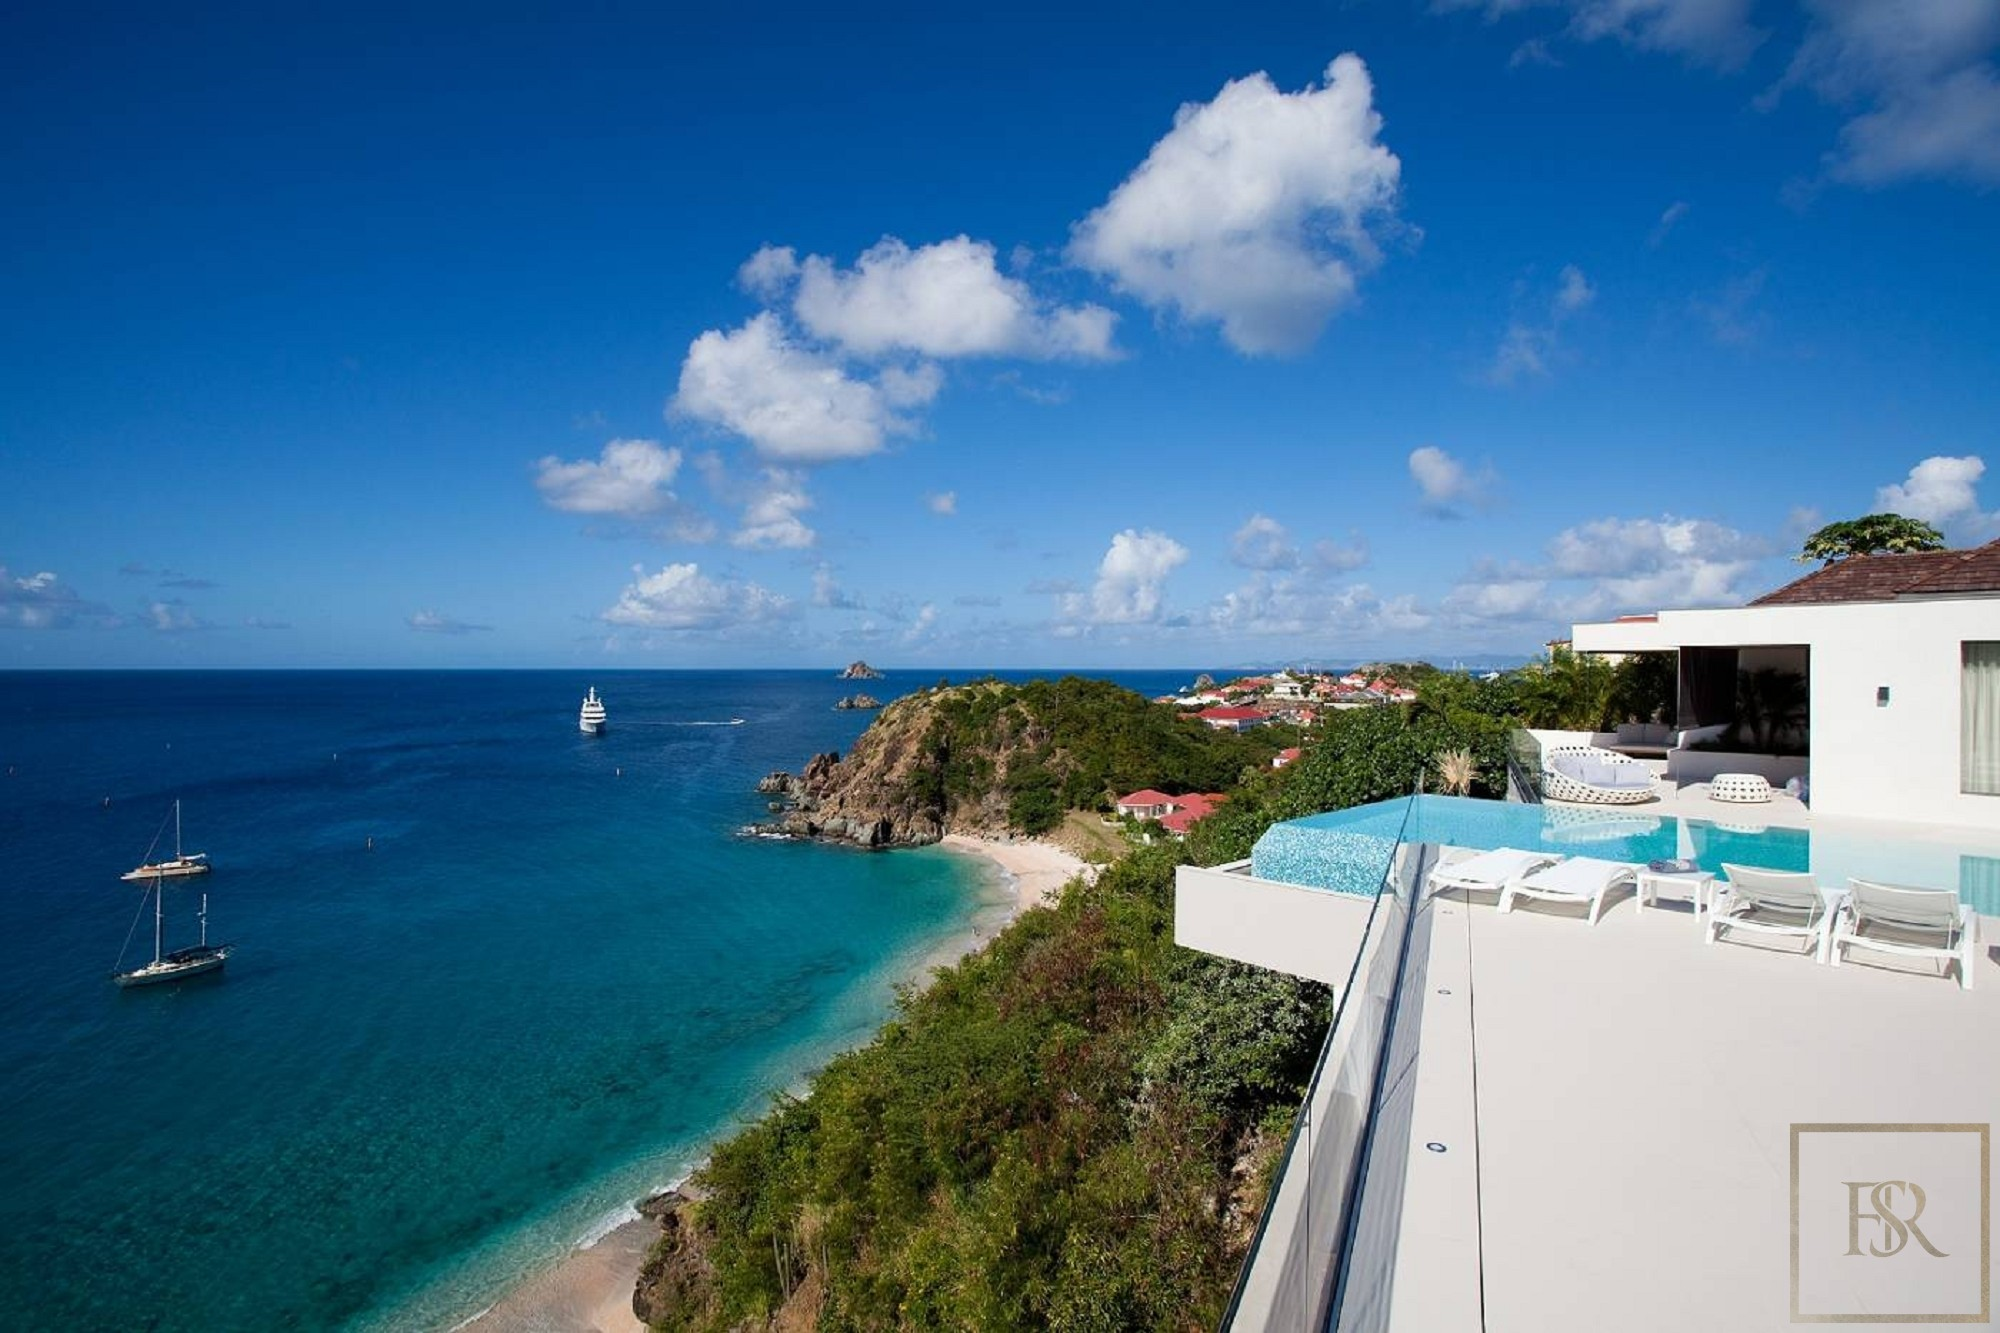 For super rich ultra luxury real estate properties homes, most expensive houses, rent unique penthouse apartment and ultimate villa in St Barth - Lurin St Barth St. Barthélemy for rent holiday